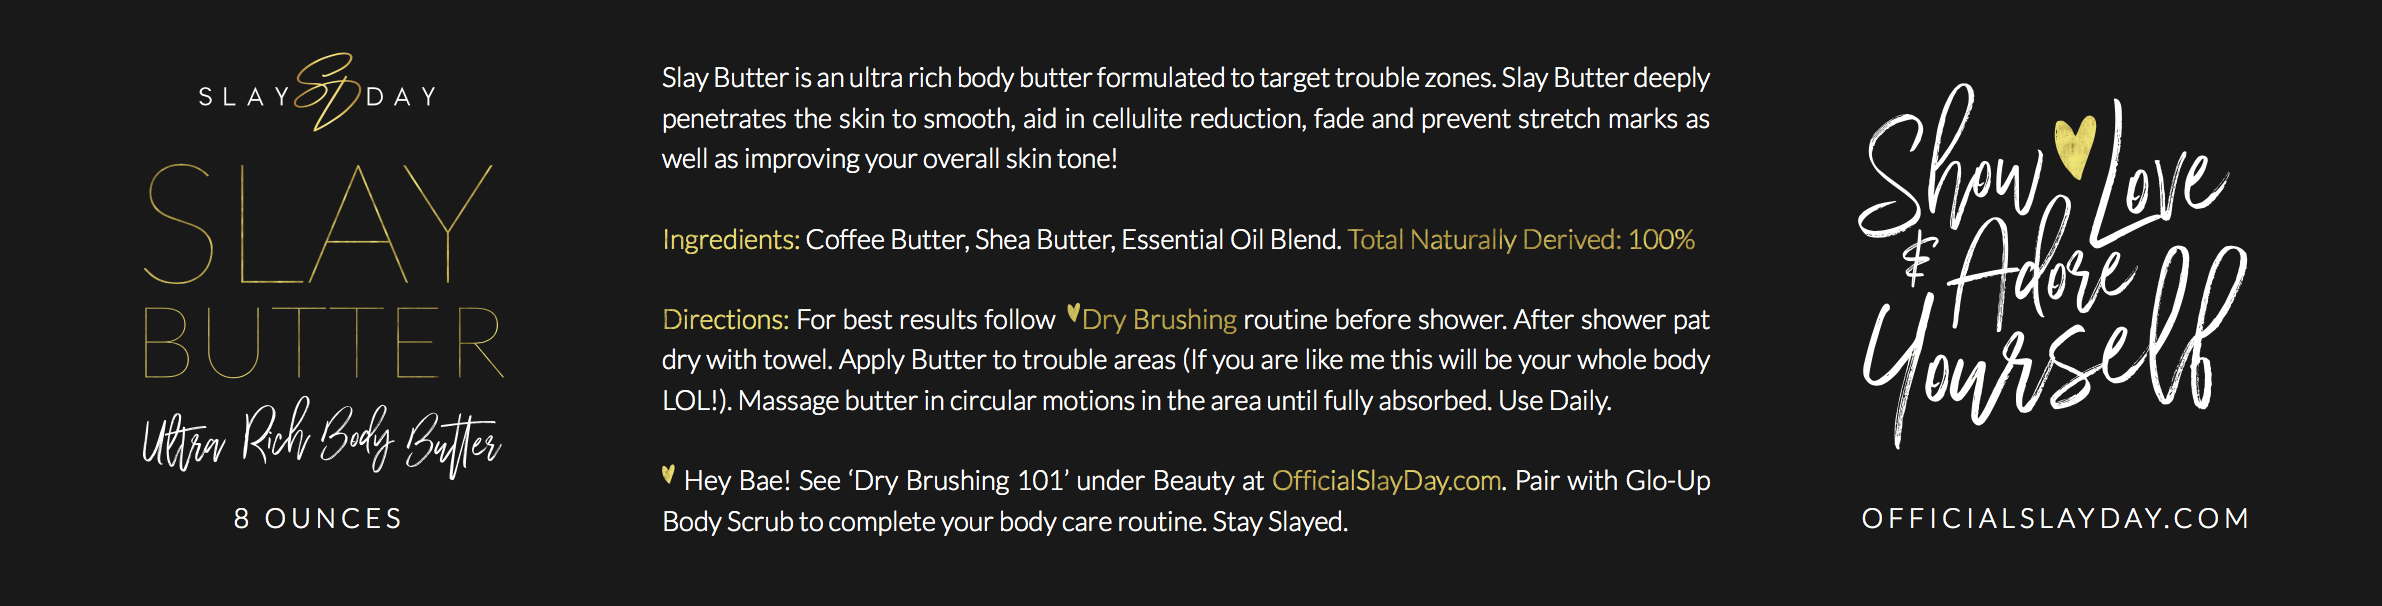 Label for body butter jar